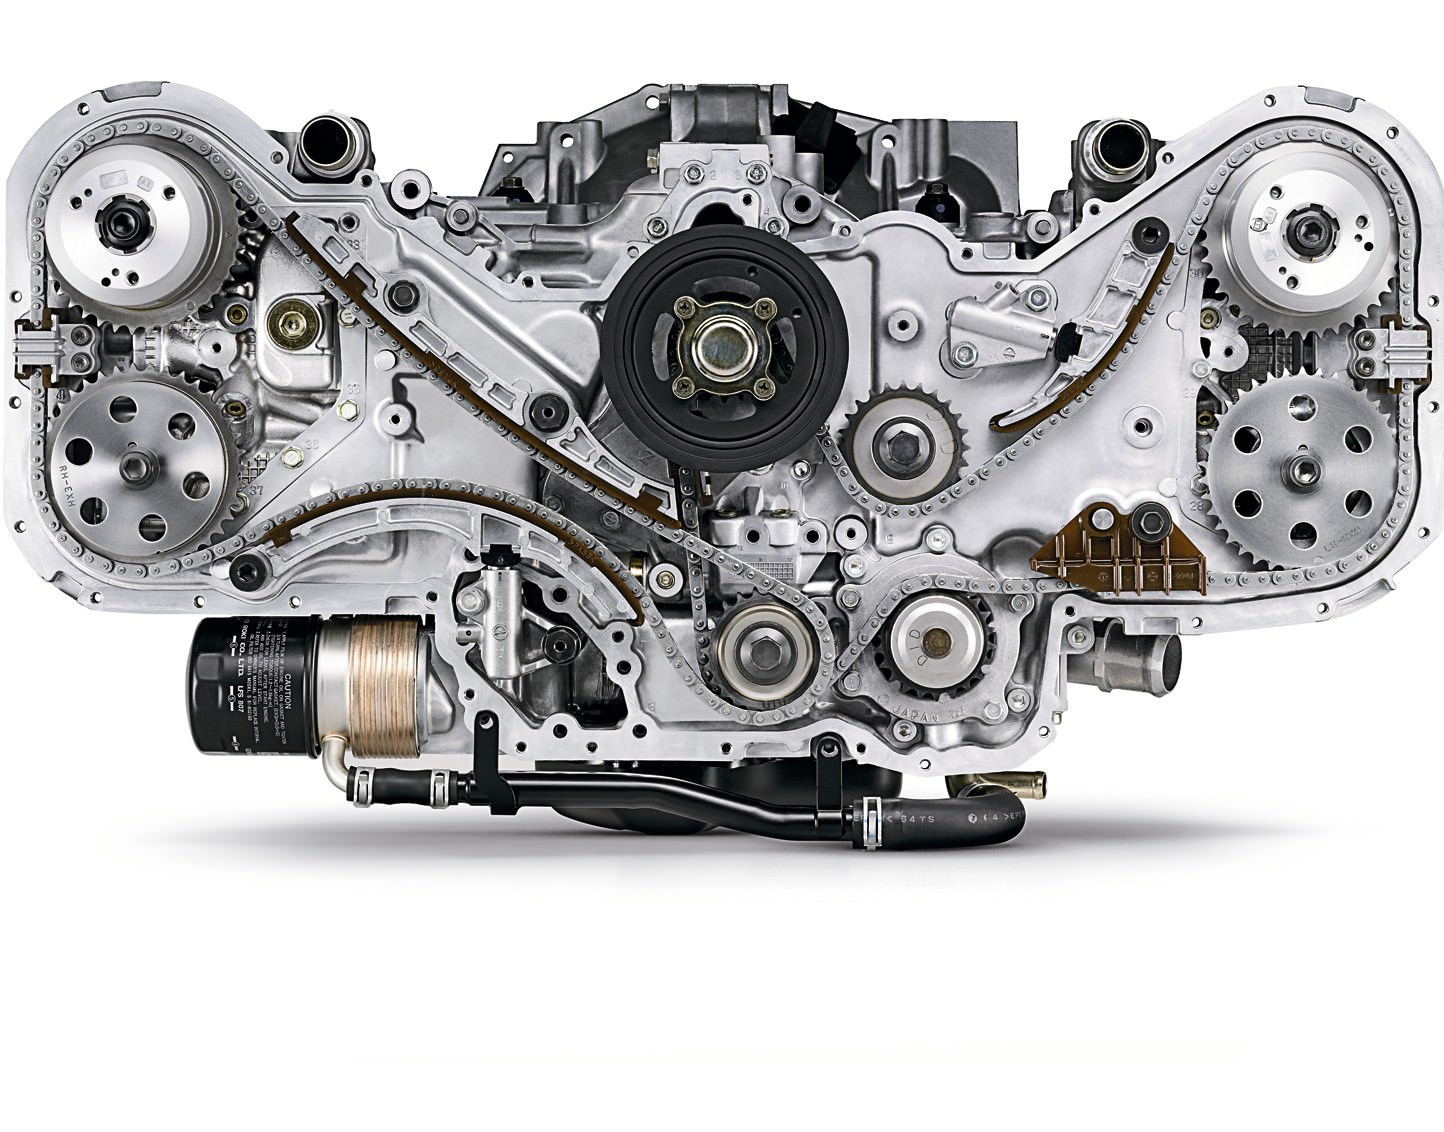 hight resolution of  a horizontally opposed masterpiece that will soon fall victim to this recent industry trend the 3 6 liter 6 cylinder boxer engine is on it s way out